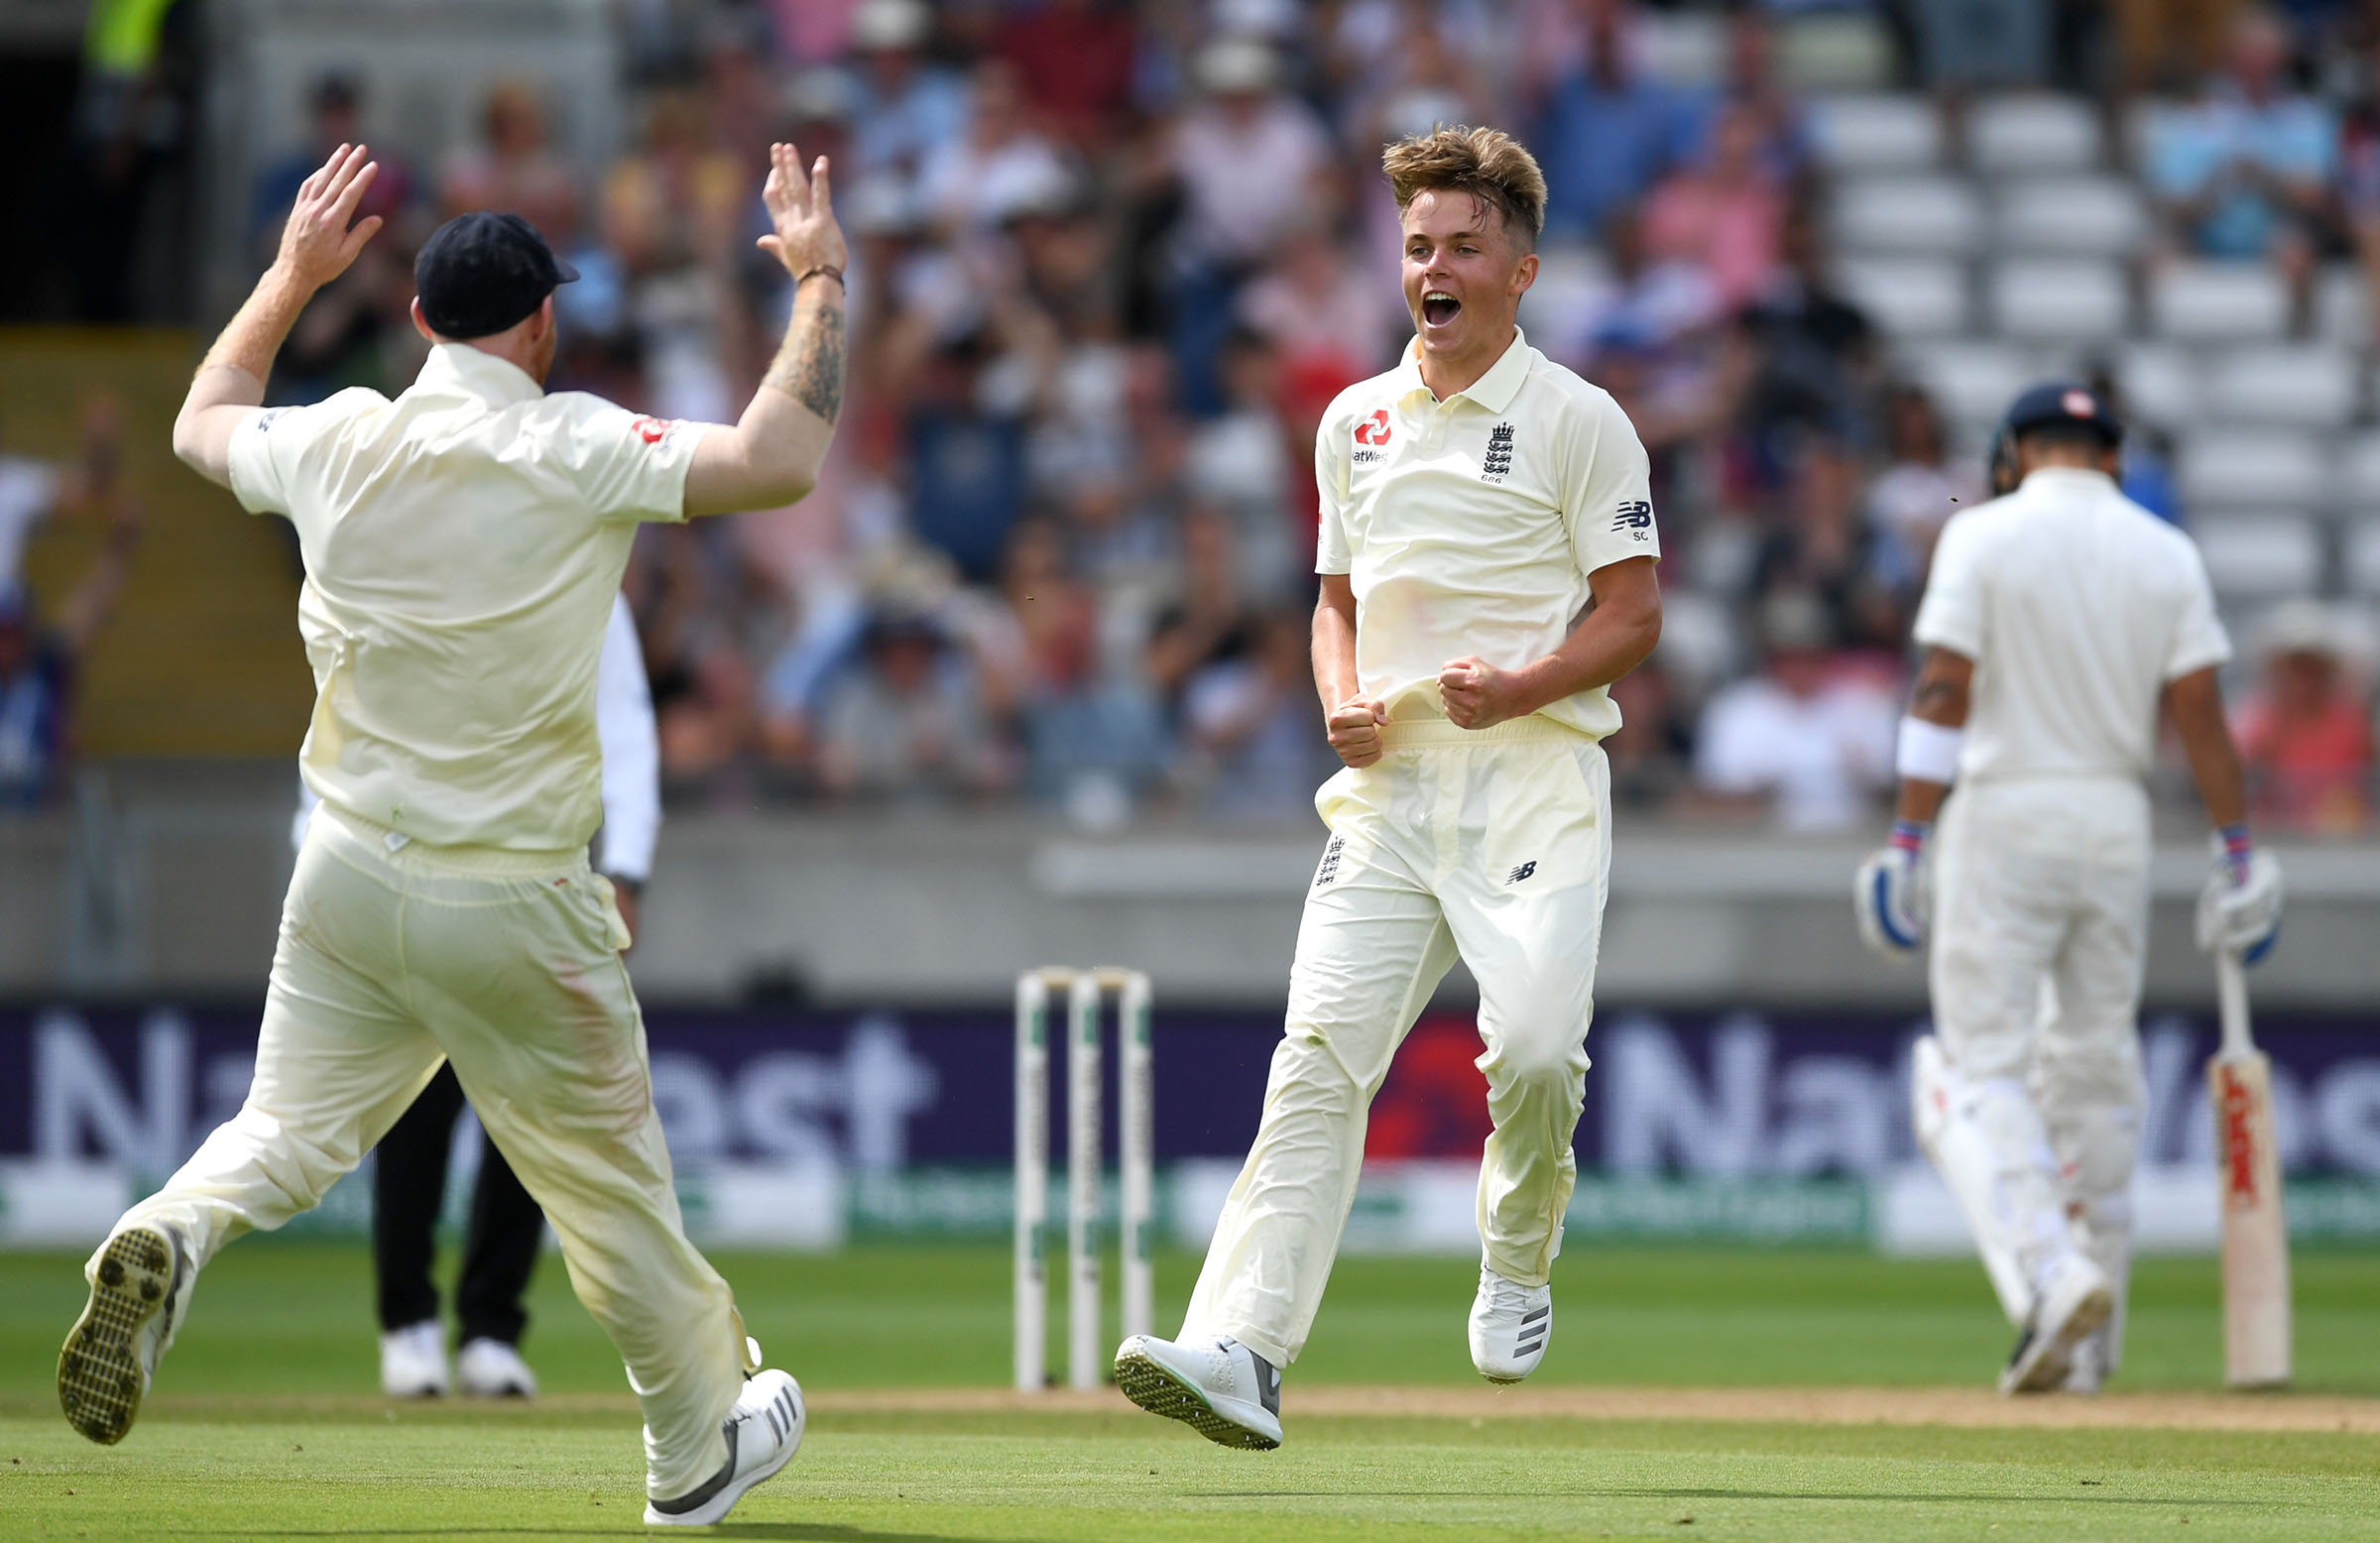 England ENG vs India IND Cricket Score Get England vs India Scores India in England 3 T20I Series 2018 updates Stay connected for India in England 3 T20I